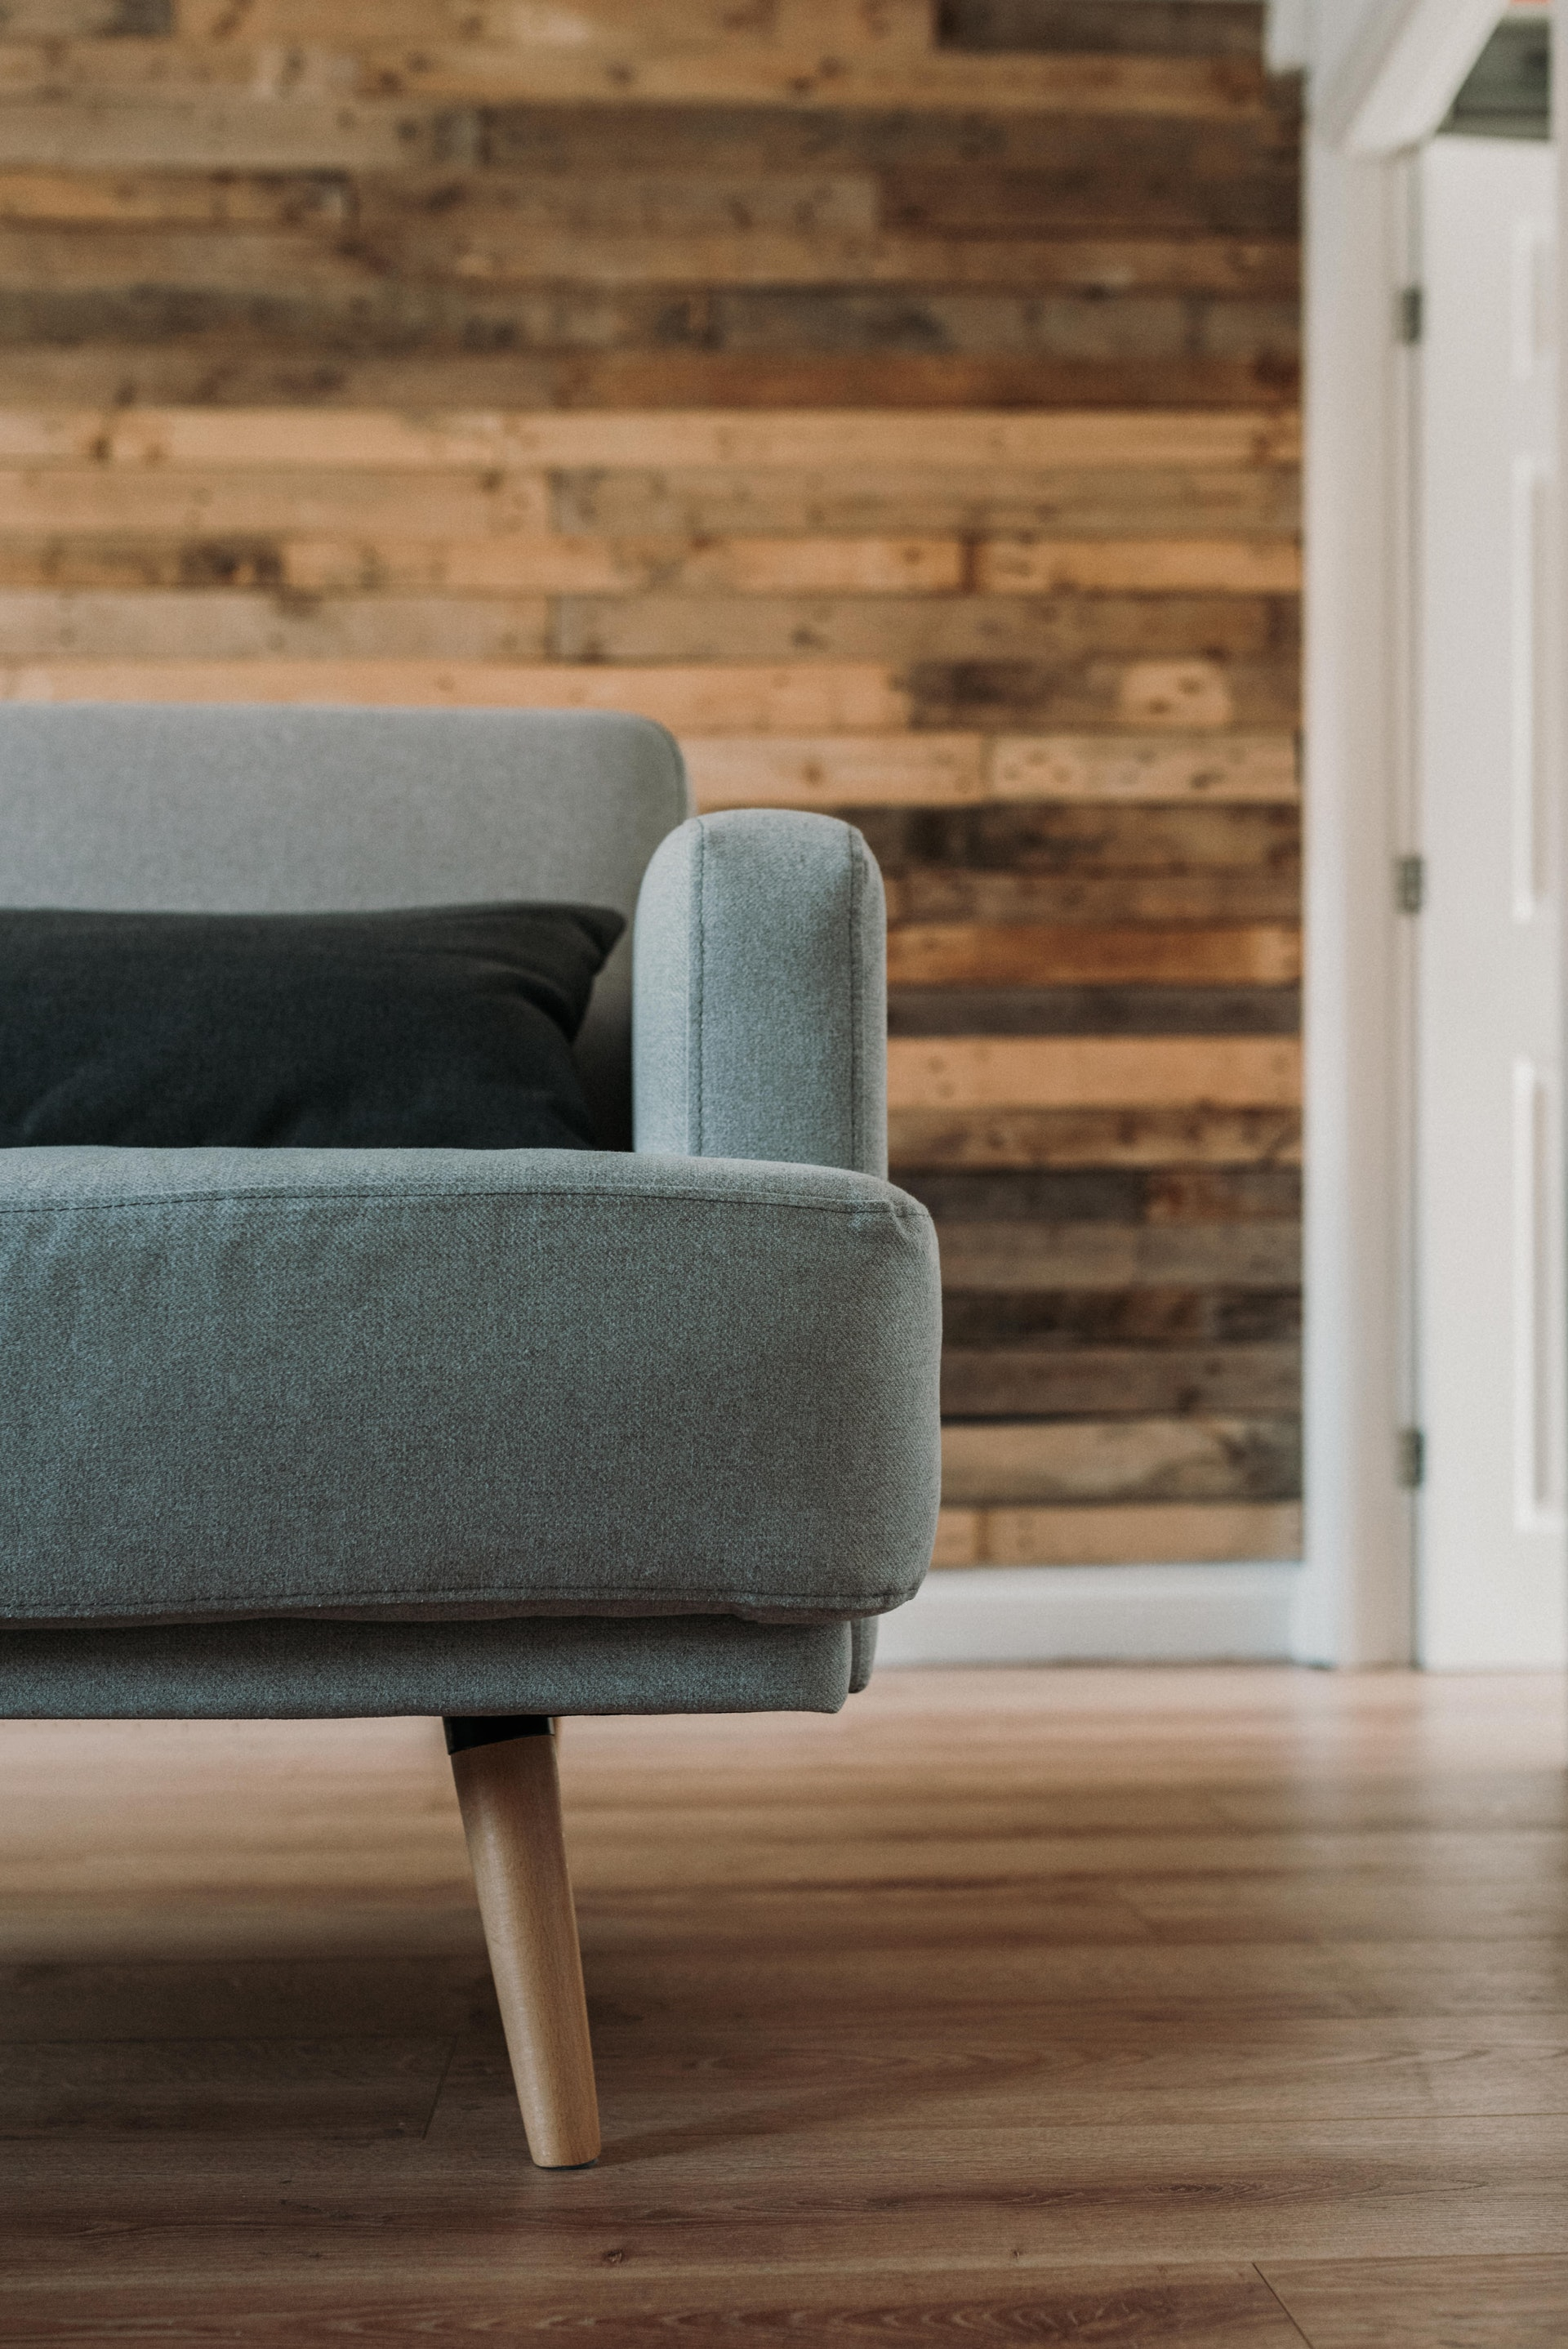 MINIMIZE DECOR - In addition to depersonalizing your home, you should also consider toning down your decor. Although your brightly colored walls may be a reflection of your style, they could be a huge turn-off for buyers. It's safest to stick with neutral wall colors such as gray, white and taupe.You should also be mindful that some of your other decor and accessories may be off-putting to a buyer. The goal is to keep the decor uncluttered, elegant and color-coordinated.